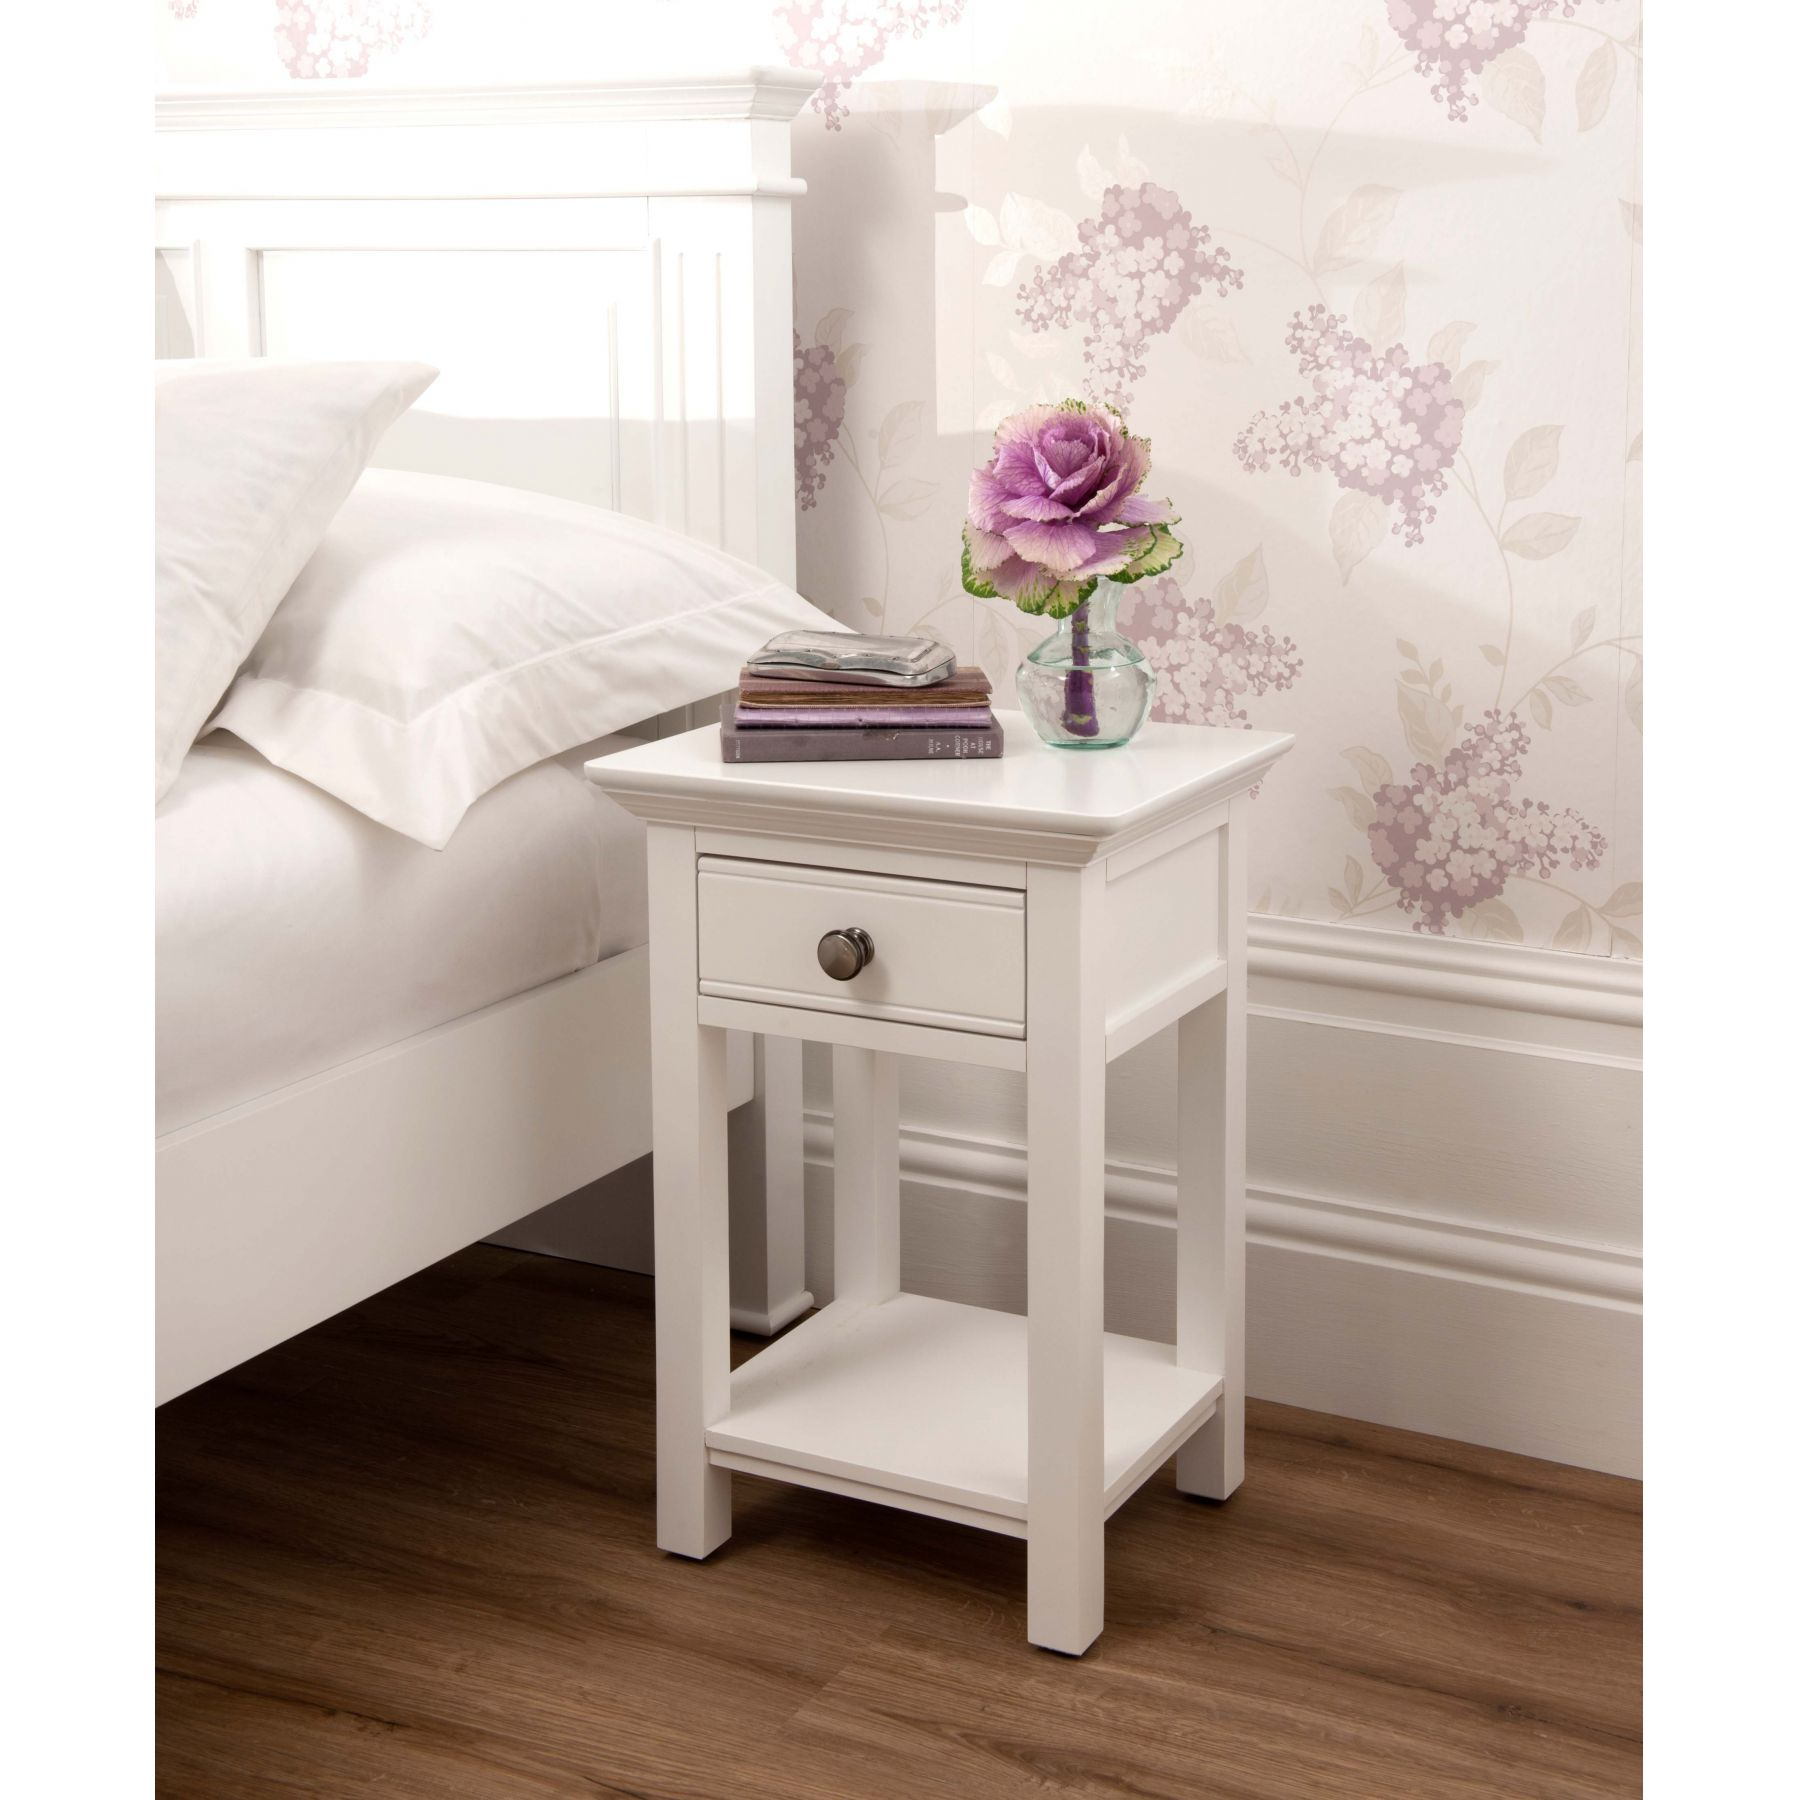 shabby chic small accent tables furniture dipping probably super fun rustic end idea mirrored glass table with drawer blue white porcelain lamp bedroom sets high patio chairs